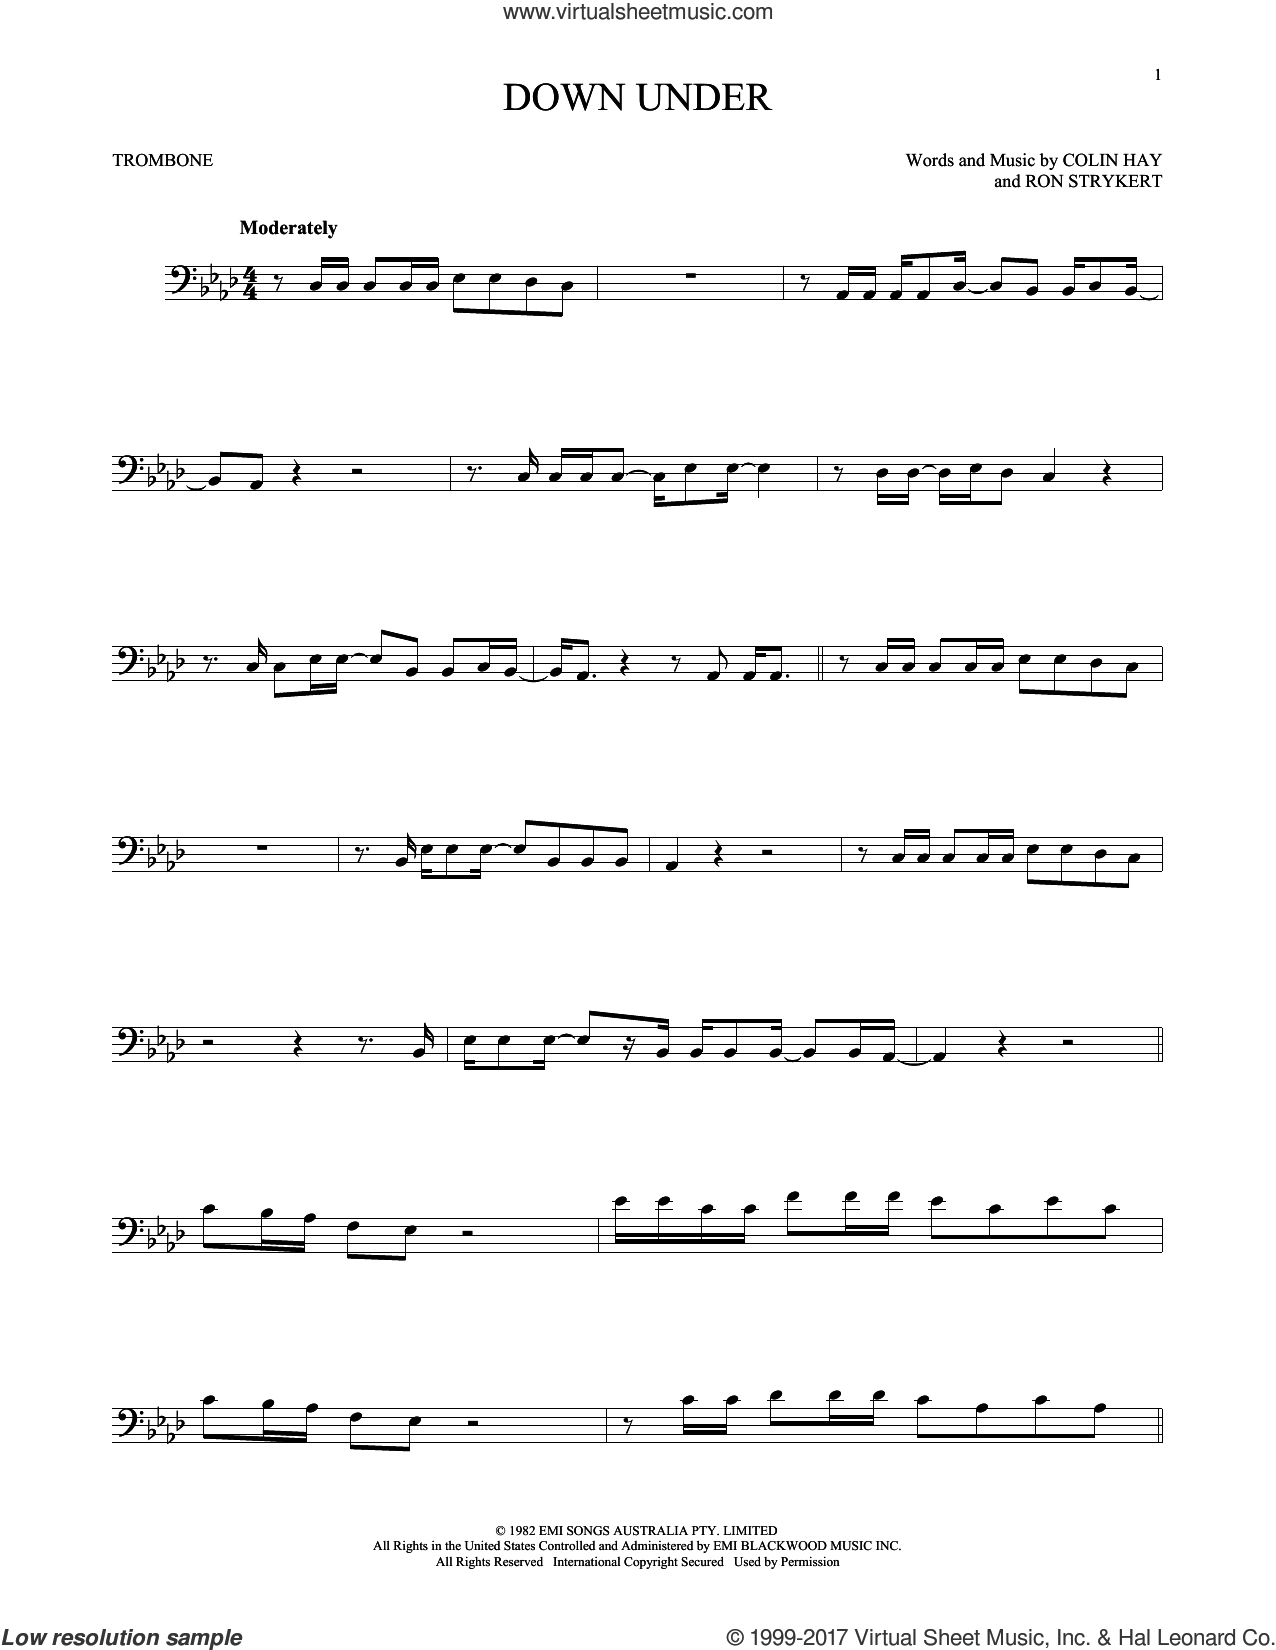 Down Under sheet music for trombone solo by Men At Work, Colin Hay and Ron Strykert, intermediate skill level